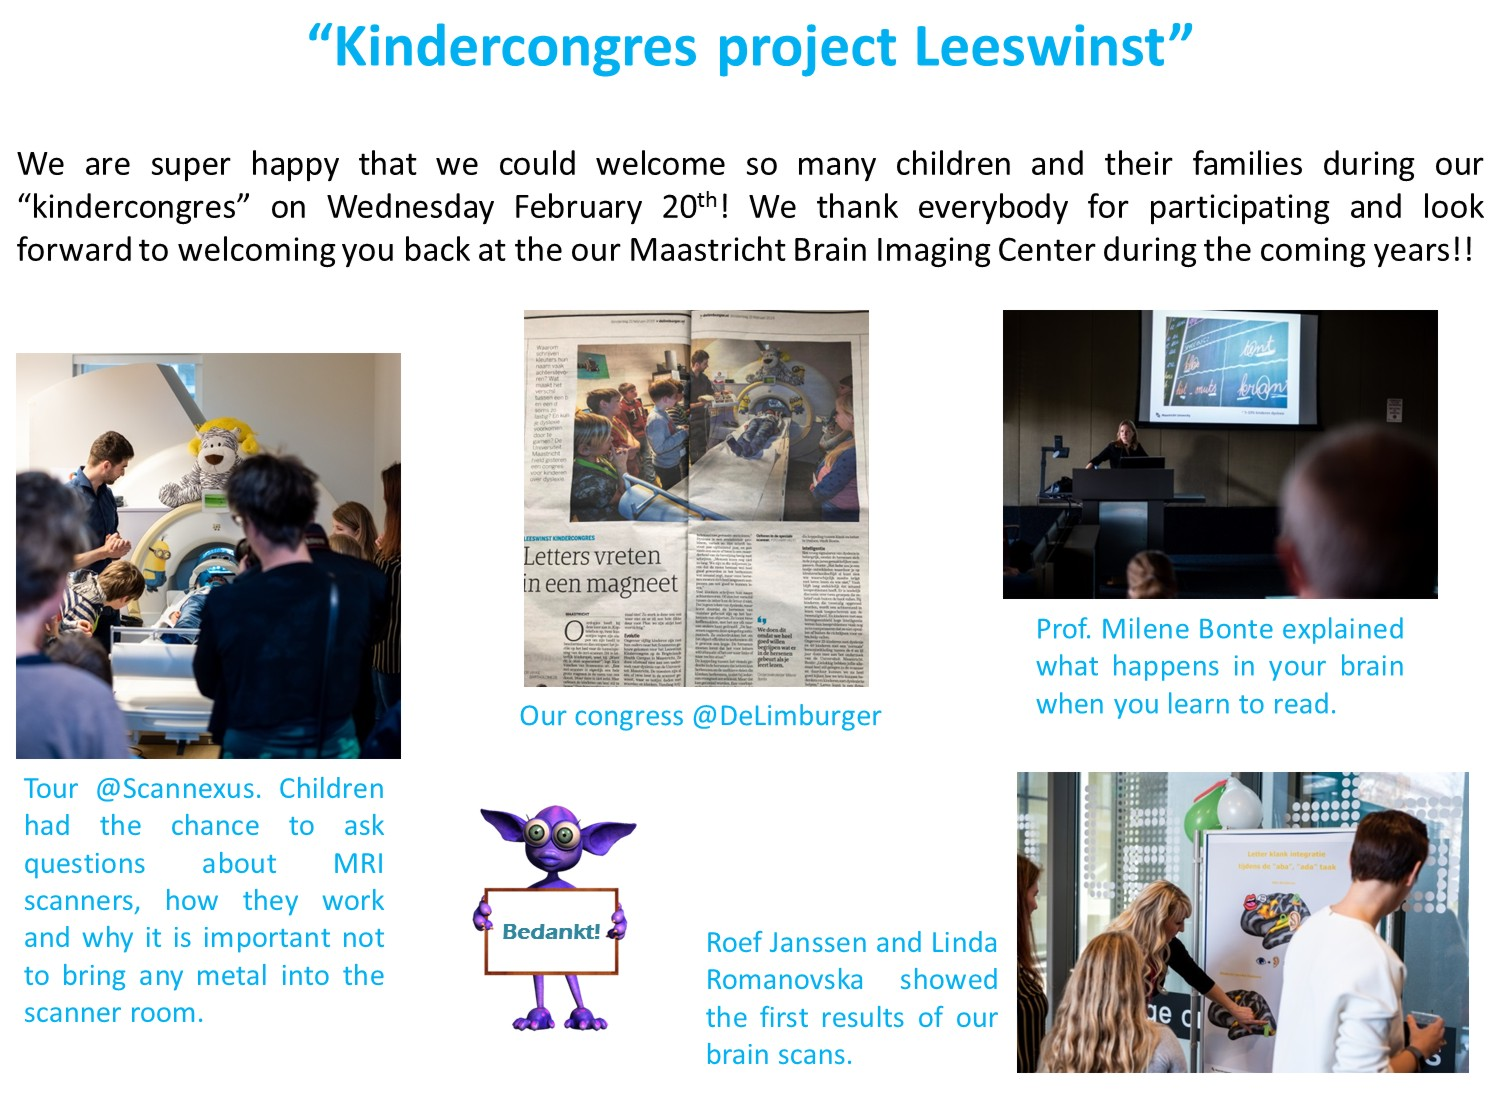 Kindercongres project Leeswinst_english